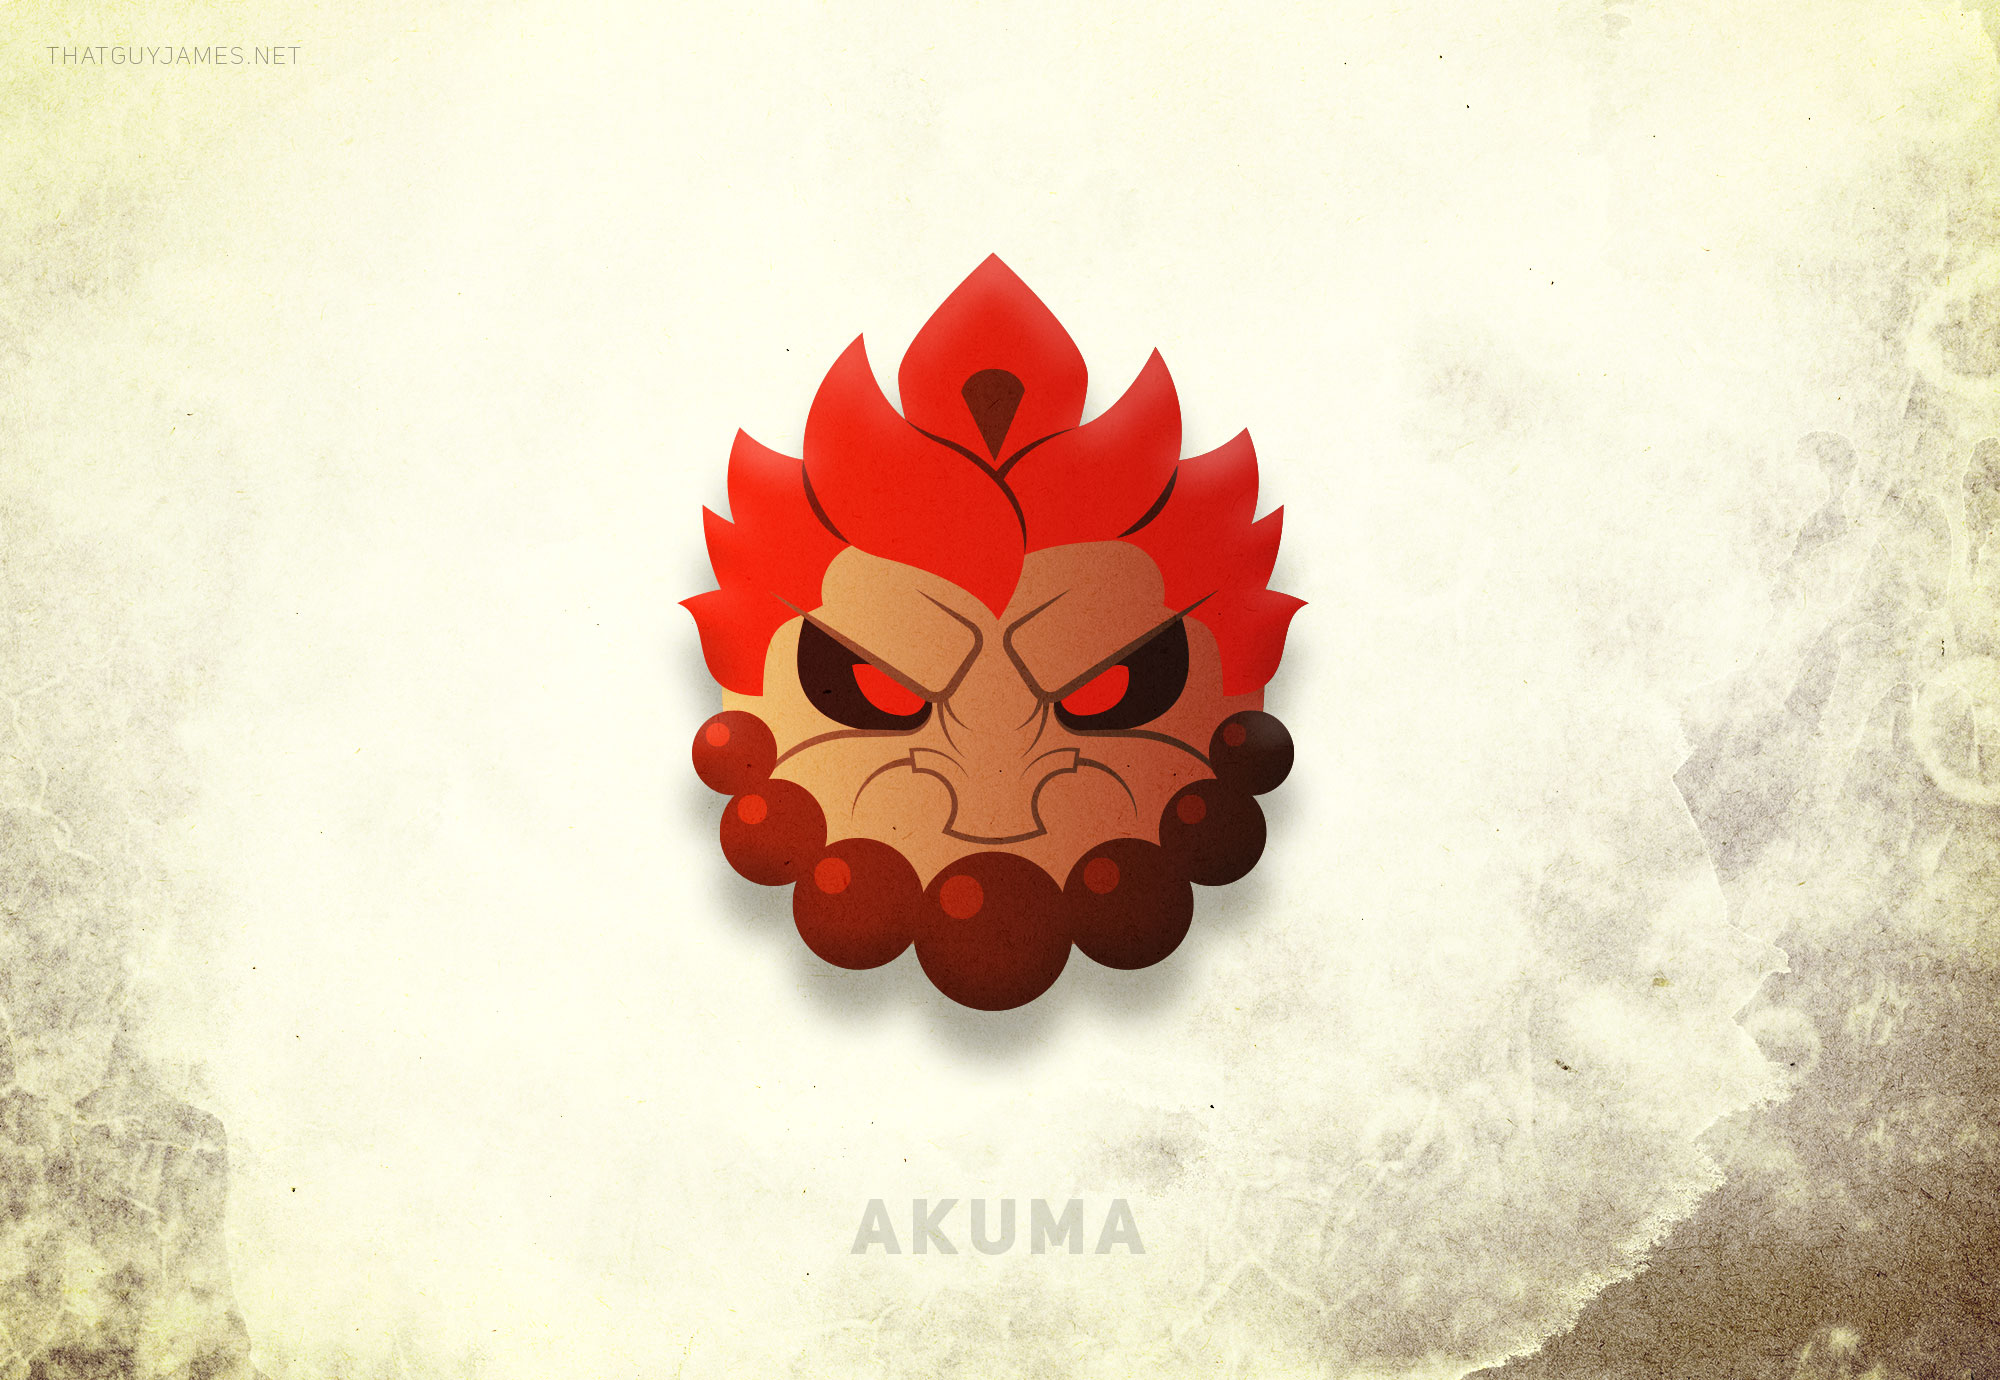 The idea that started this project, Akuma is the only character I ever played and thus the only character I ever got any good at when Street Fighter 4 dropped. Of all the characters, I feel this one was the most successful. I've had several peple tell me this guy reminds them of Samurai Jack in a good way. I can think of few higher compliments.